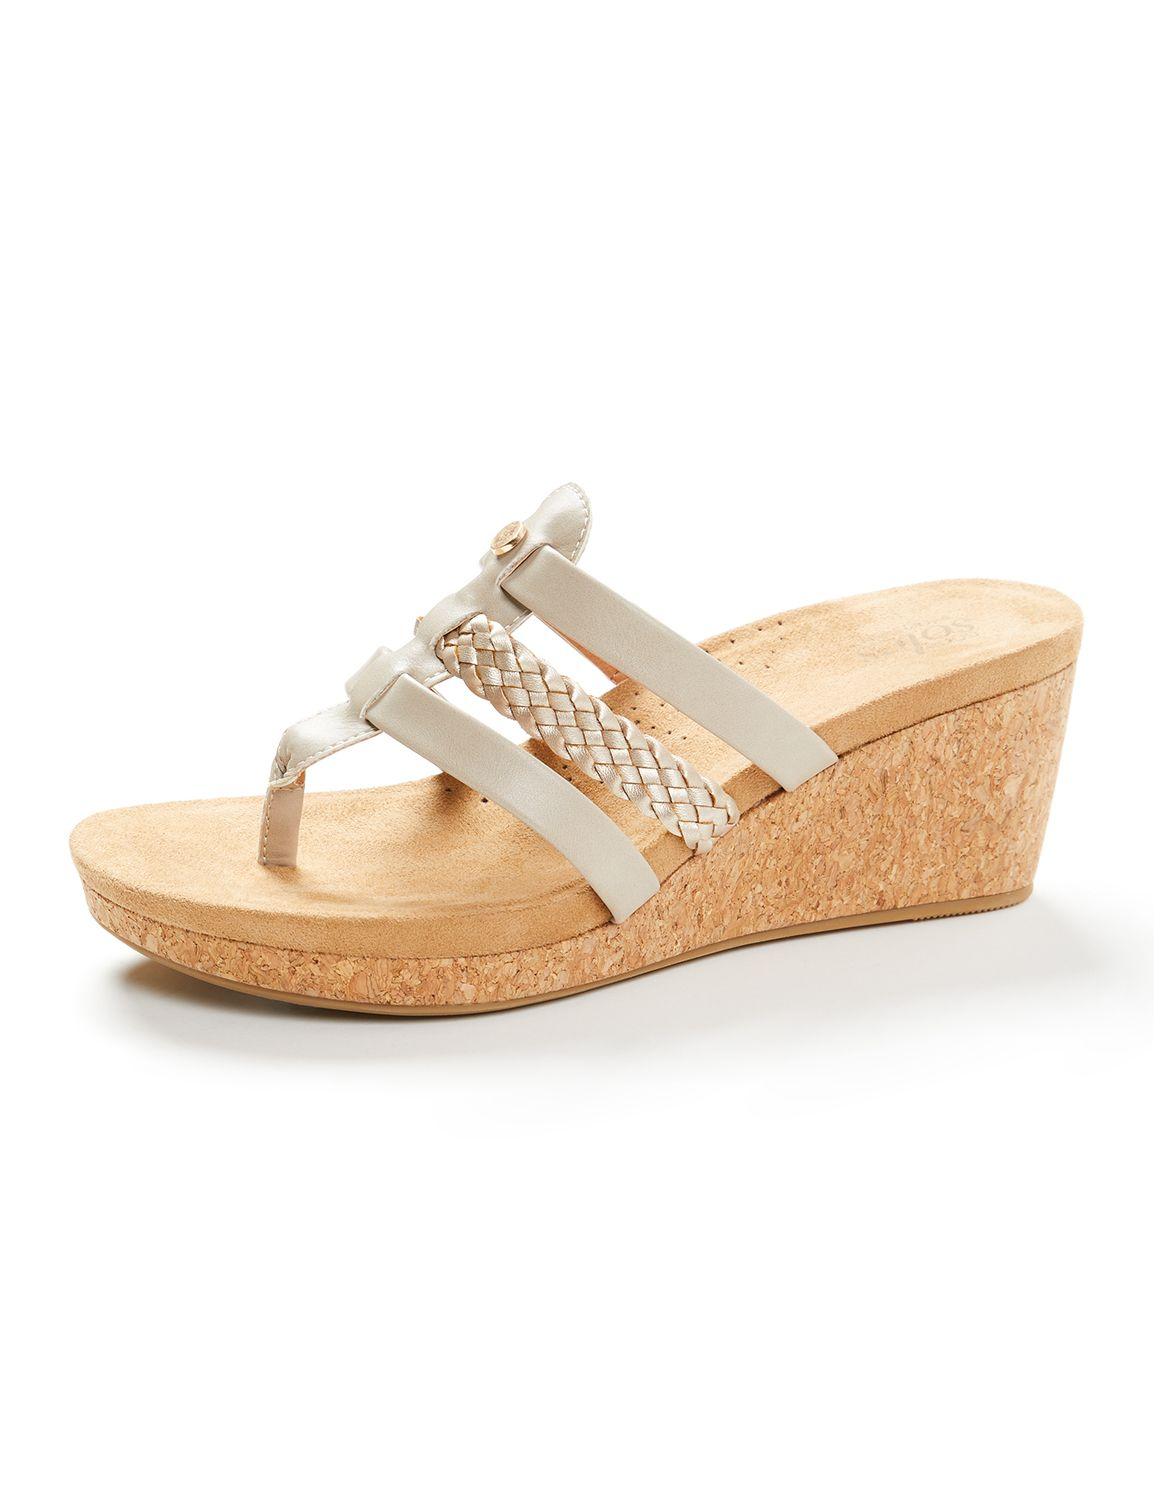 Good Soles Boardwalk Wedge Sandal Cork Wedge w/ Three Straps Wedge WL MP-300097414